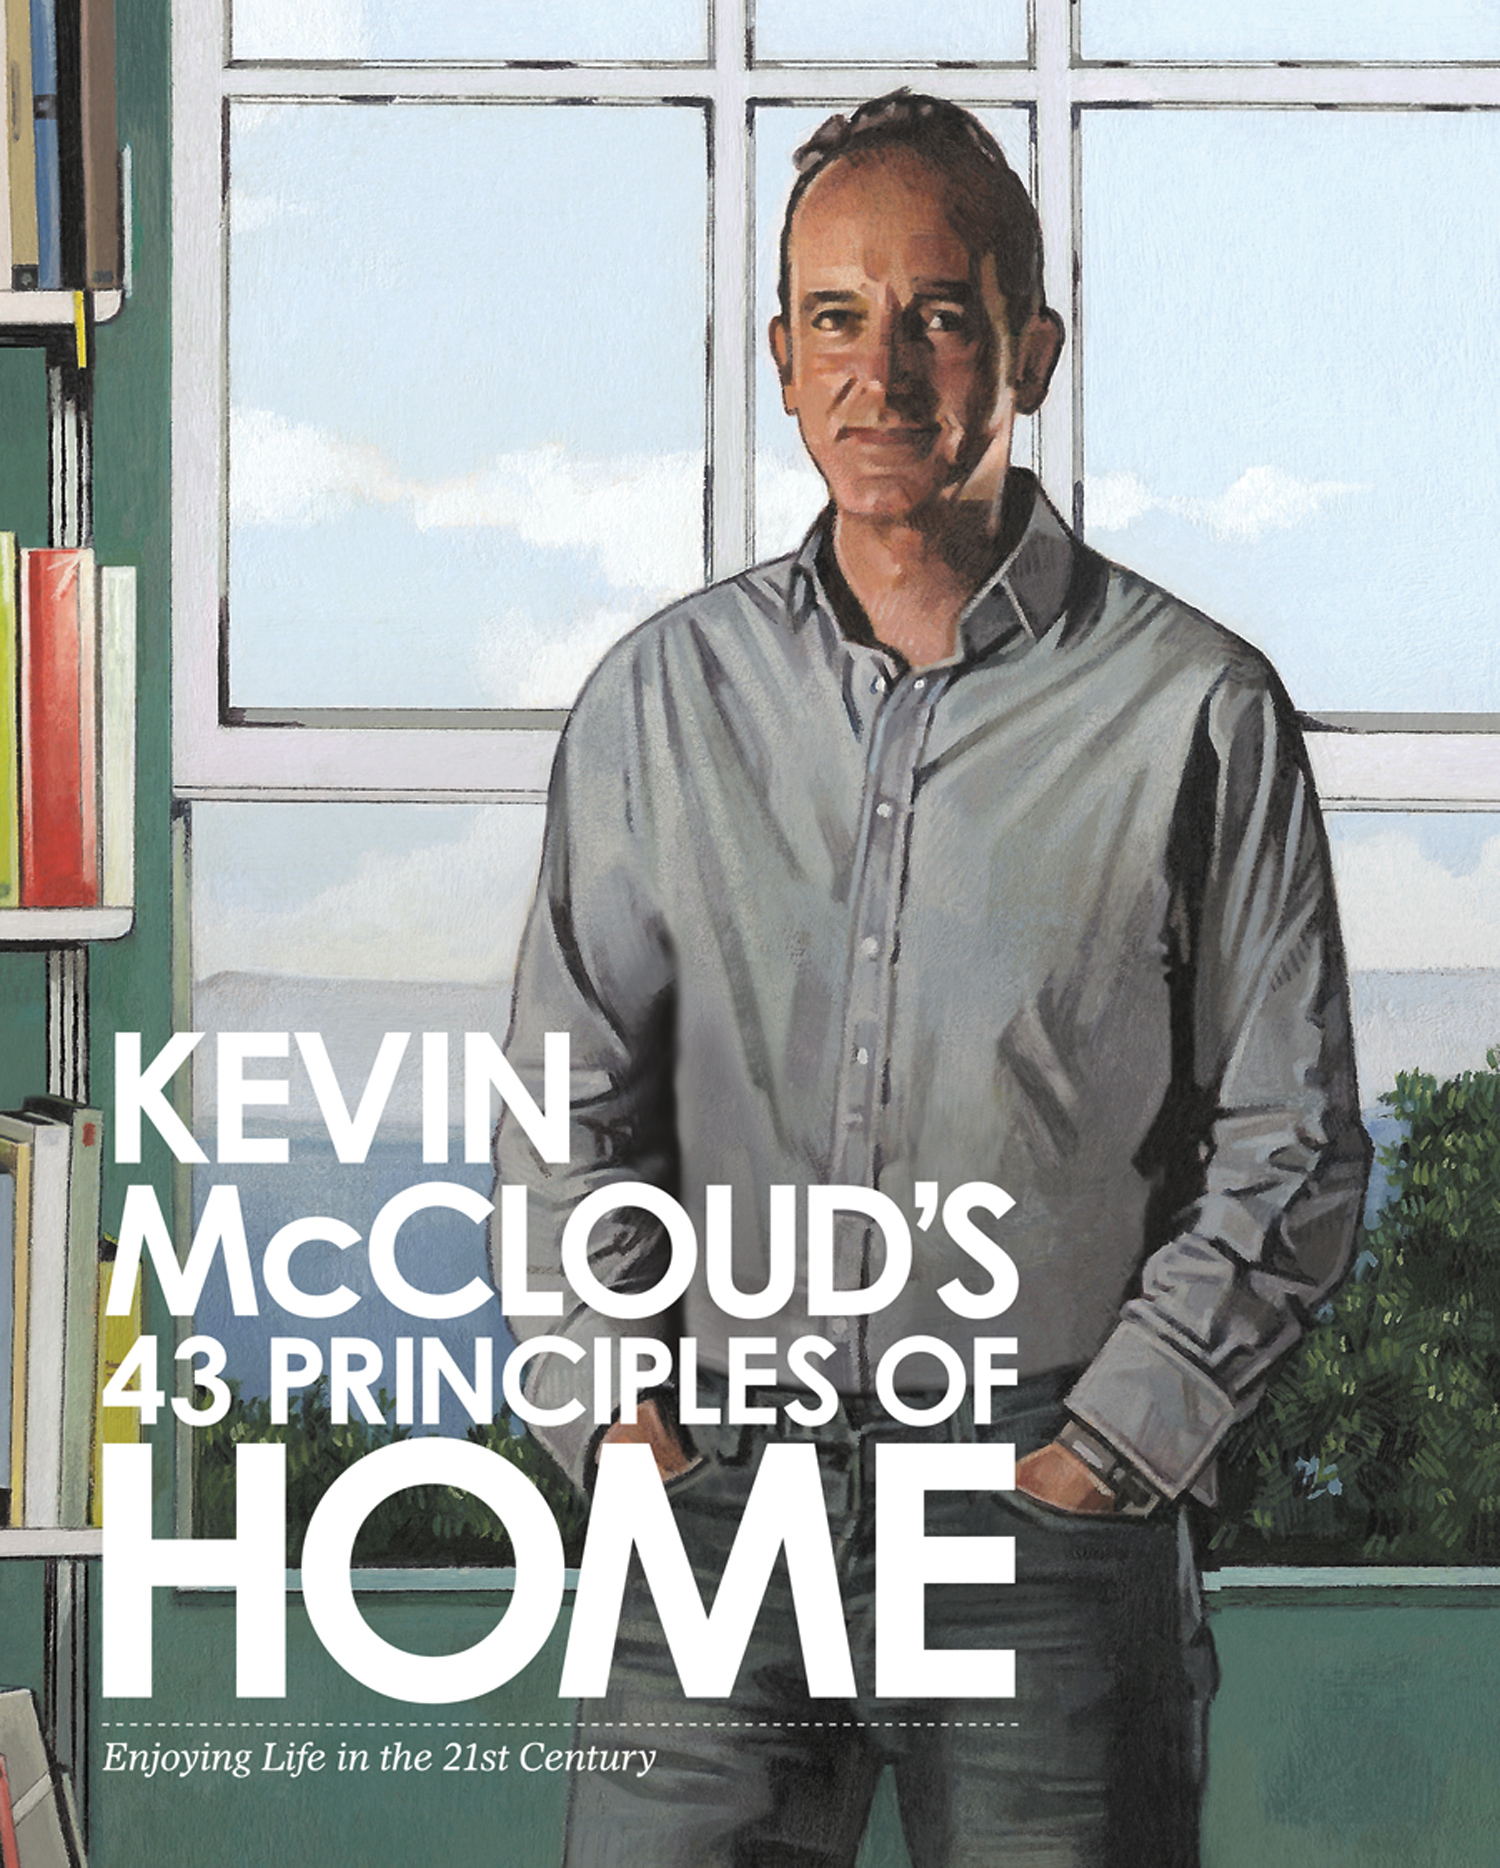 Kevin McCloud's 43 Principles of Home: Enjoying Life in the 21st Century By: Kevin McCloud